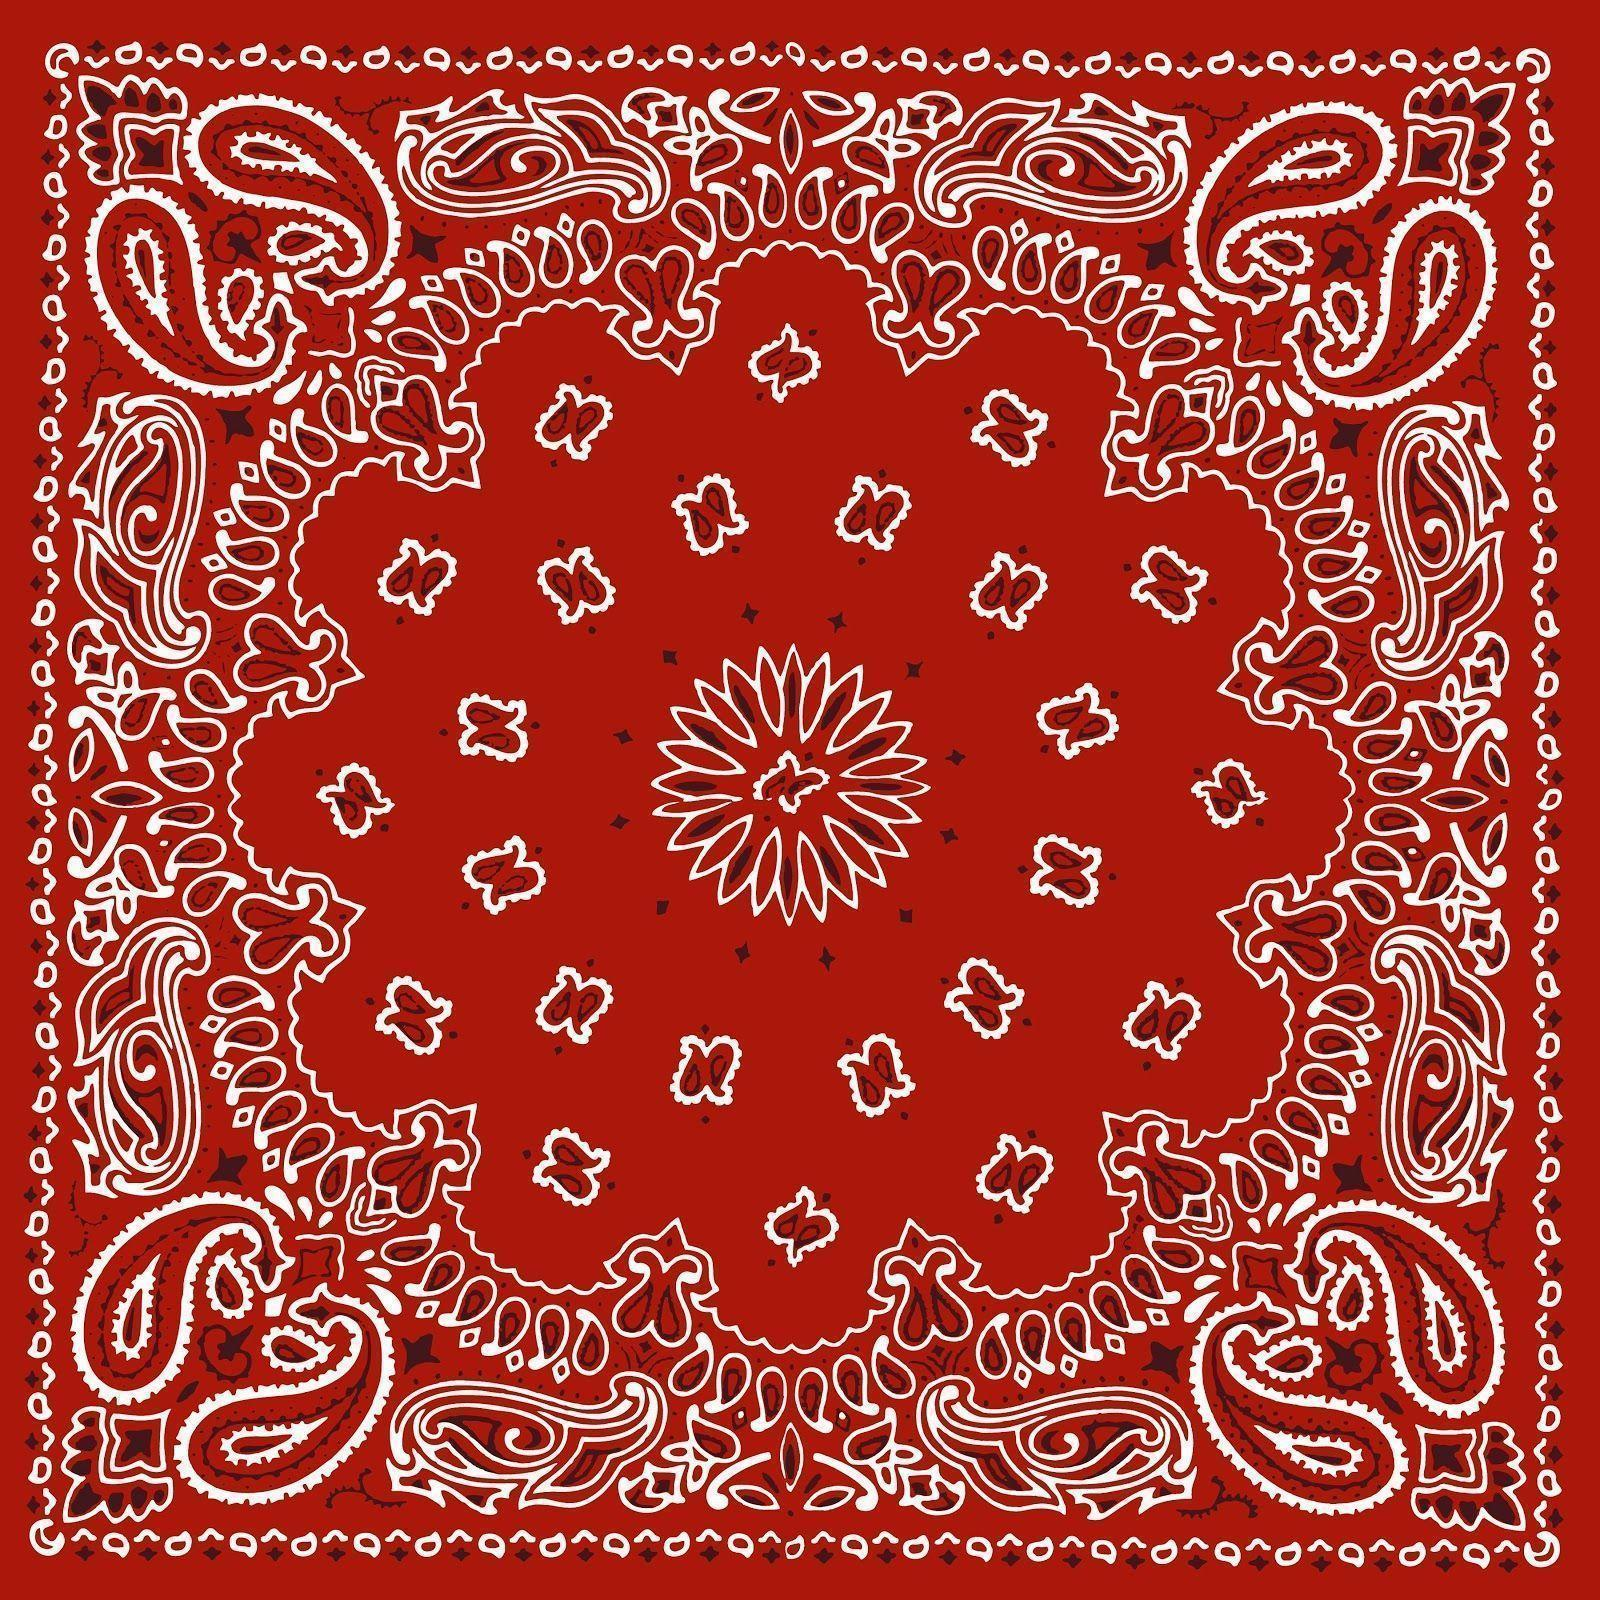 bandana desktop wallpaper - photo #23